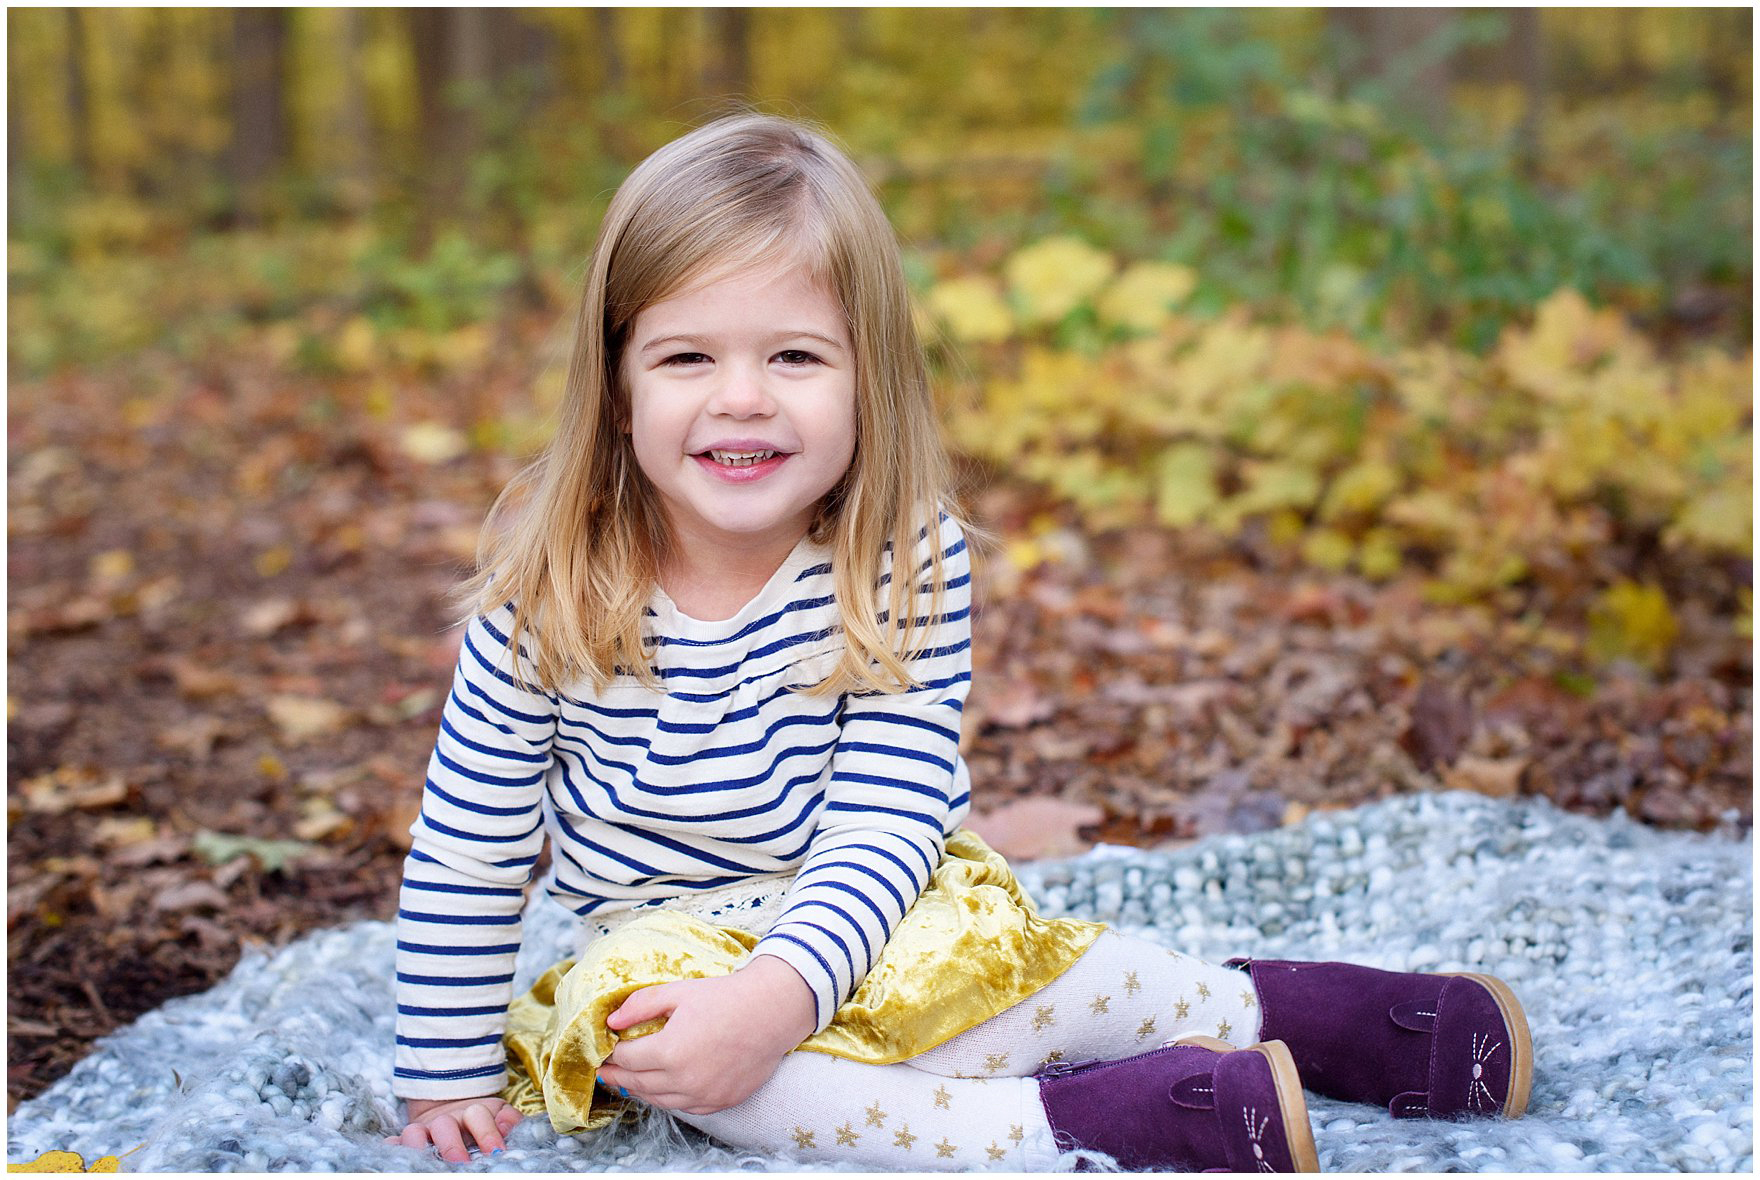 A toddler girl poses on a blanket in front of a backdrop of golden leaves during a Morton Arboretum fall family session.